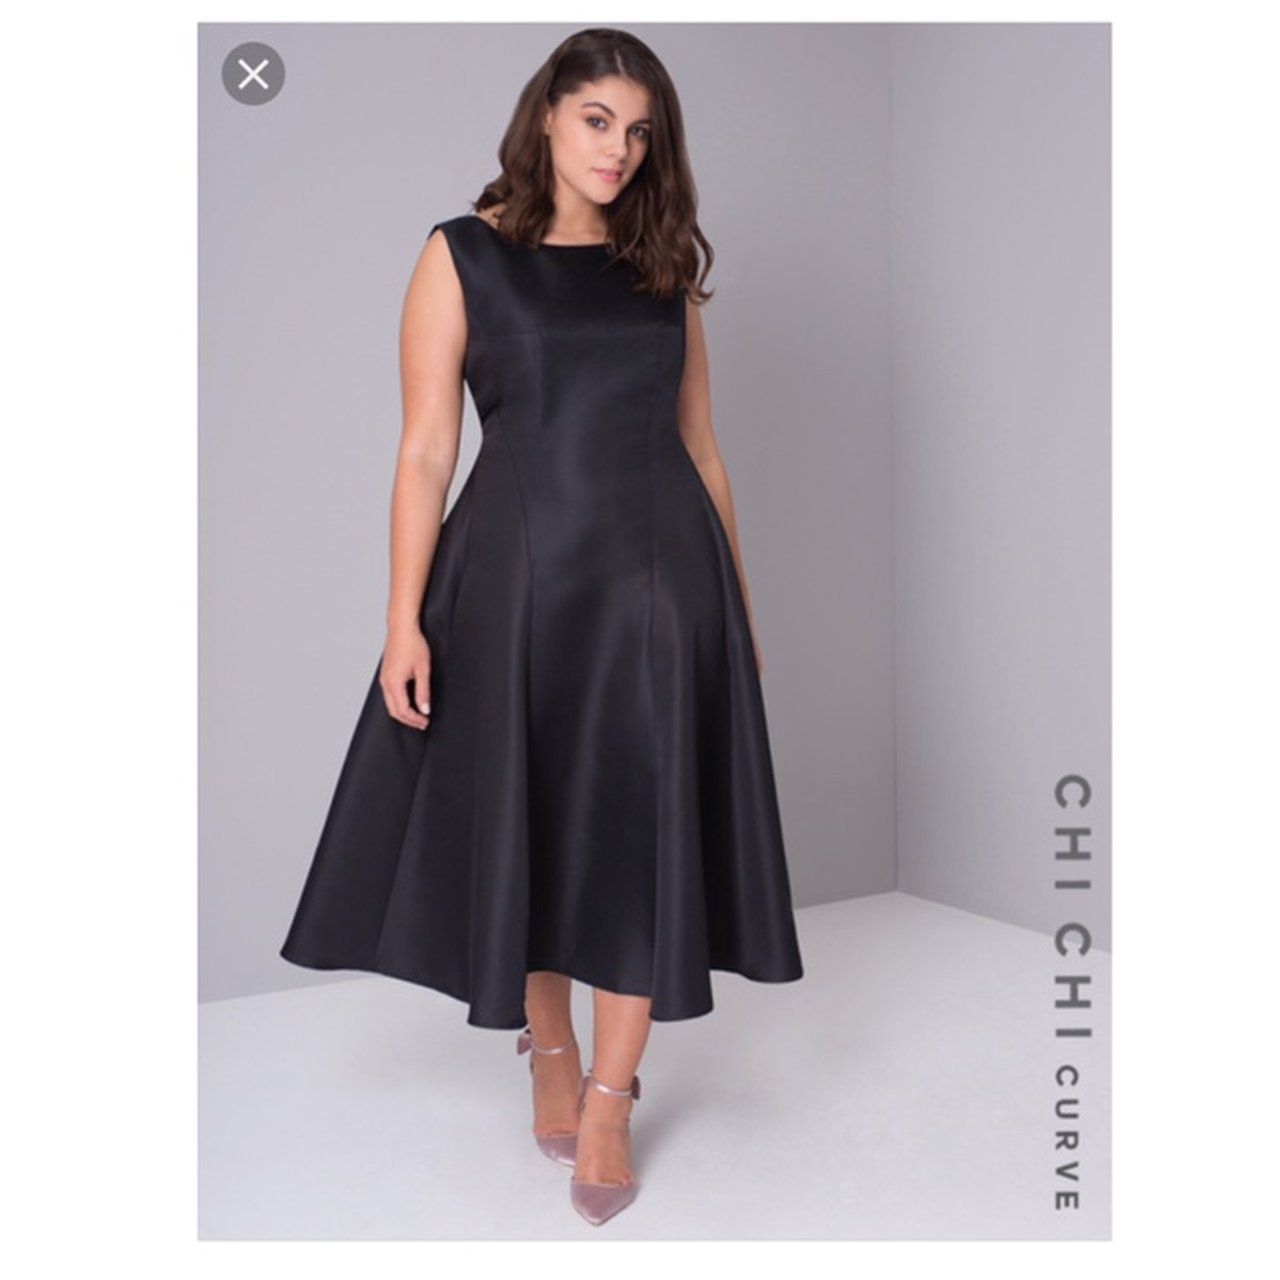 468f917eeaad69 Chi chi curve black dress